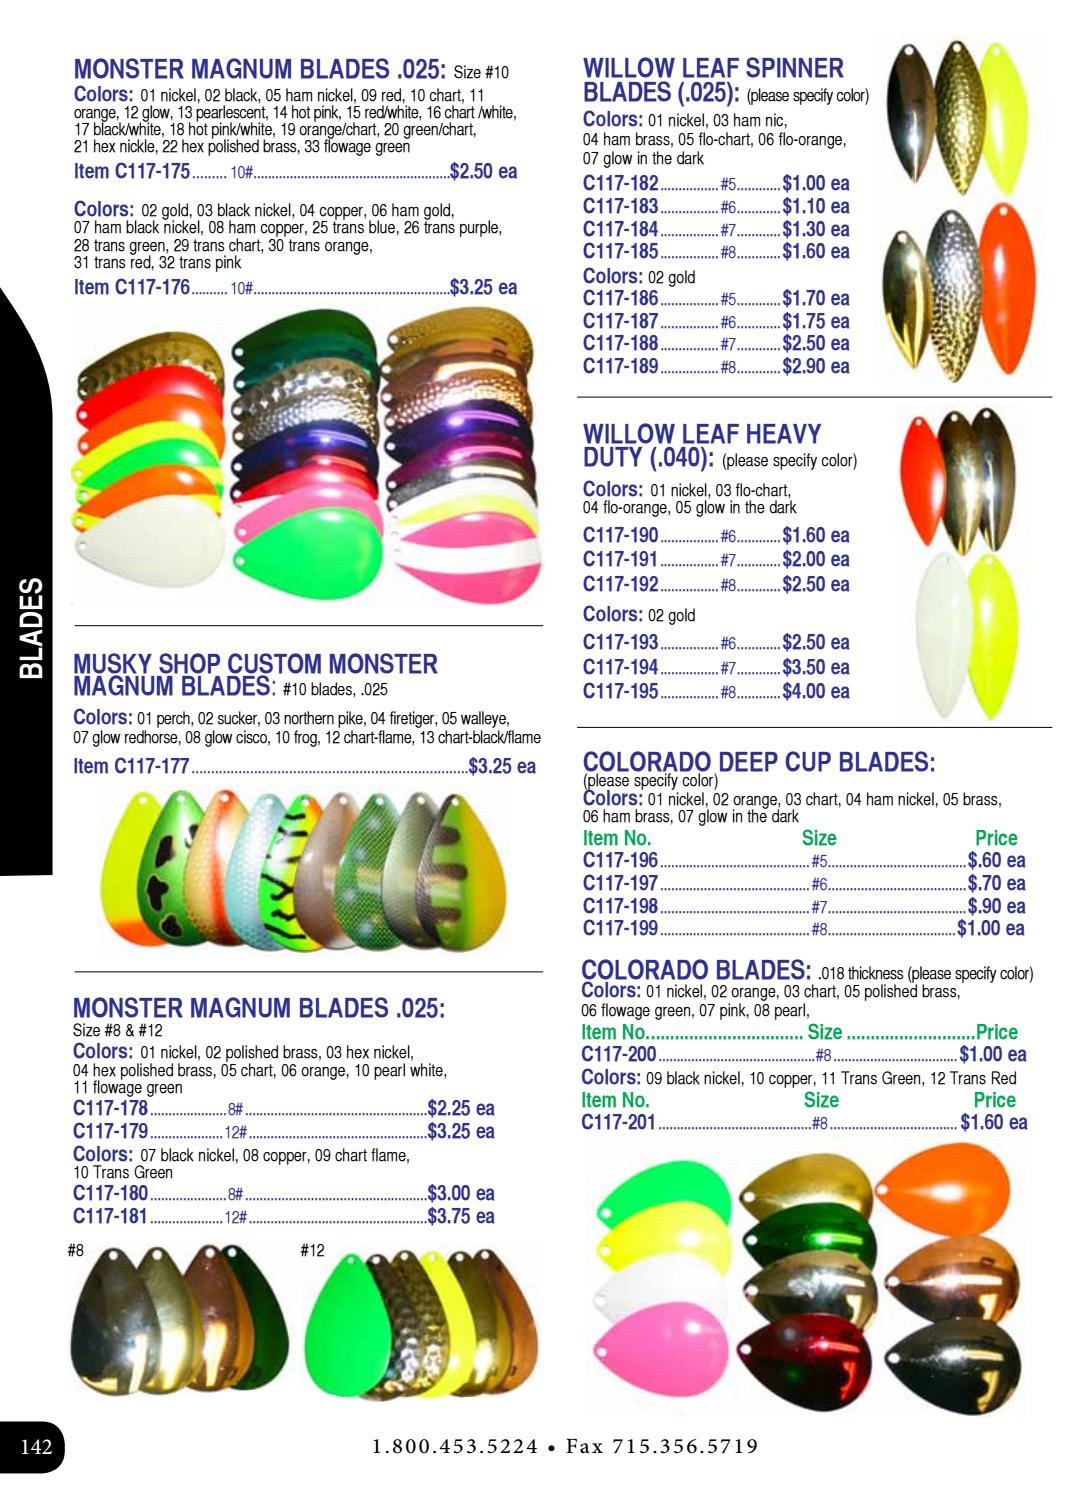 Musky shop catalog 2017 by 5 star marketing distribution issuu nvjuhfo Choice Image